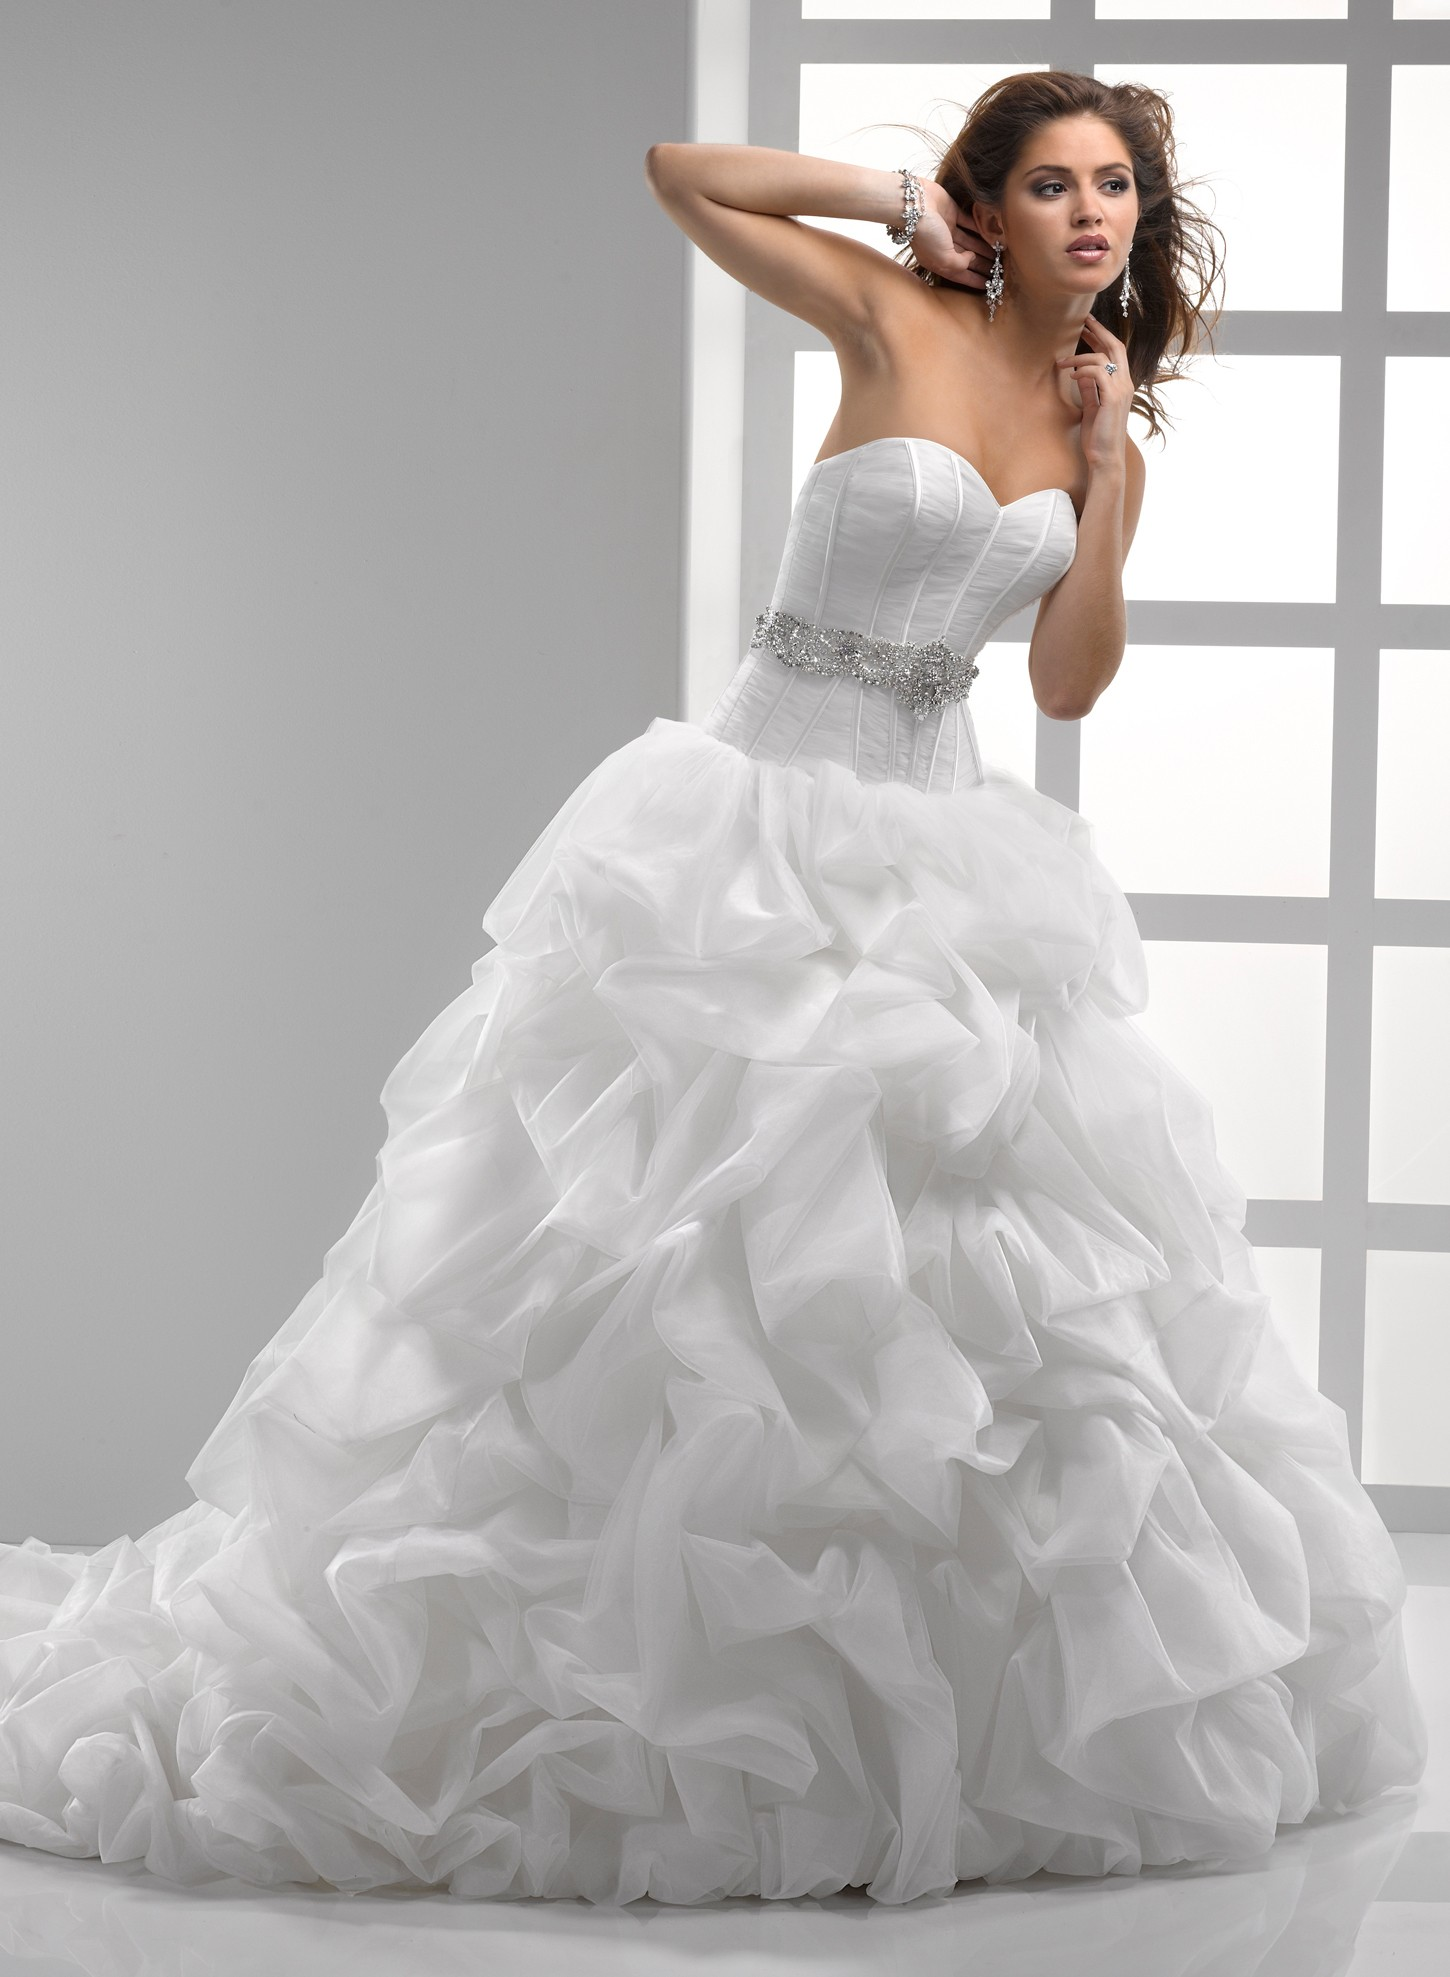 The Irresistible Attraction of Ball Gown Wedding Dresses  The WoW Style